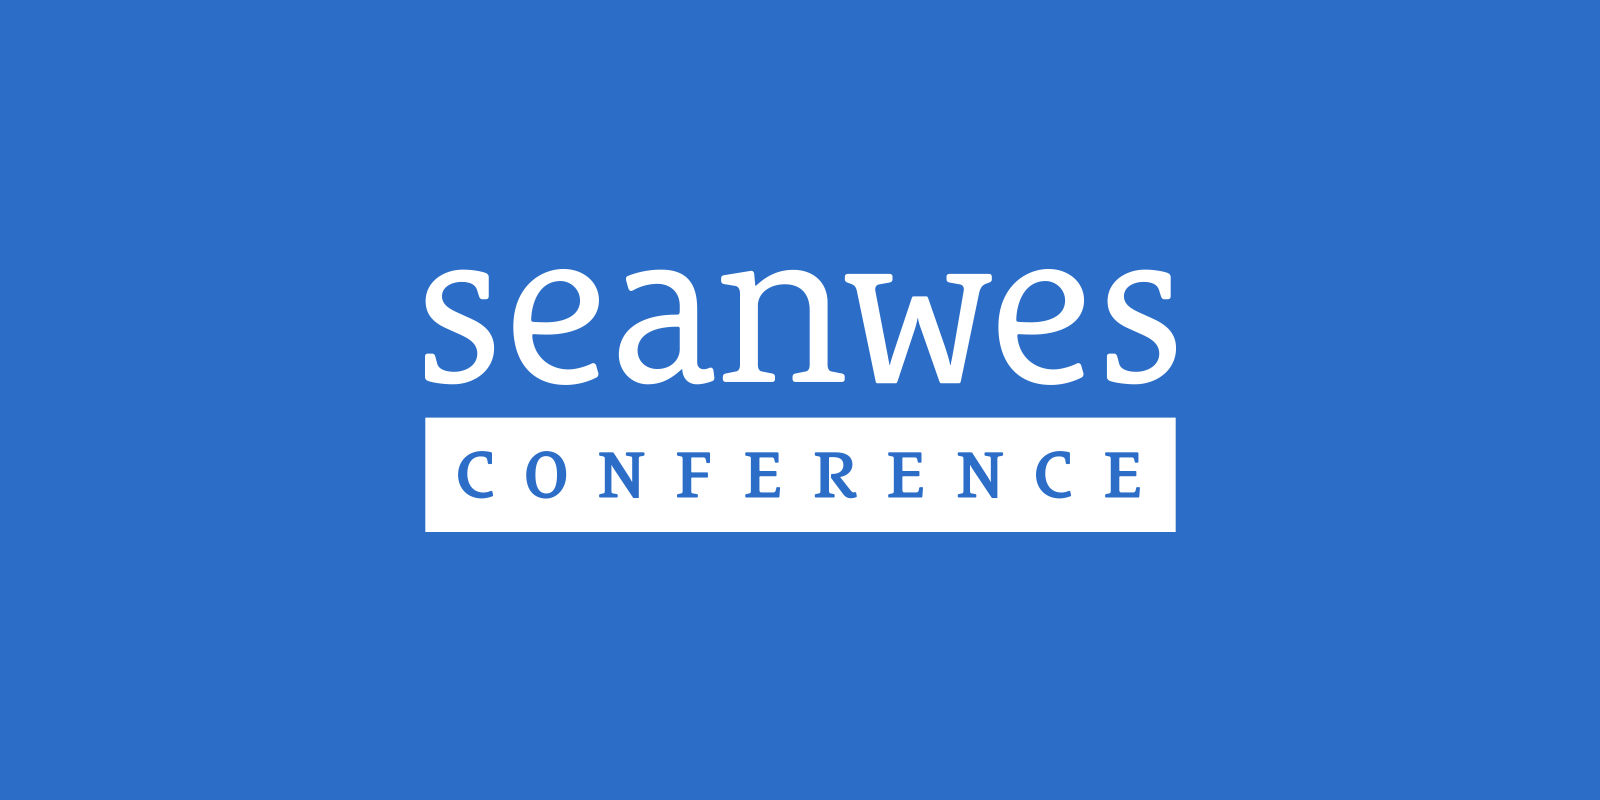 seanwes conference